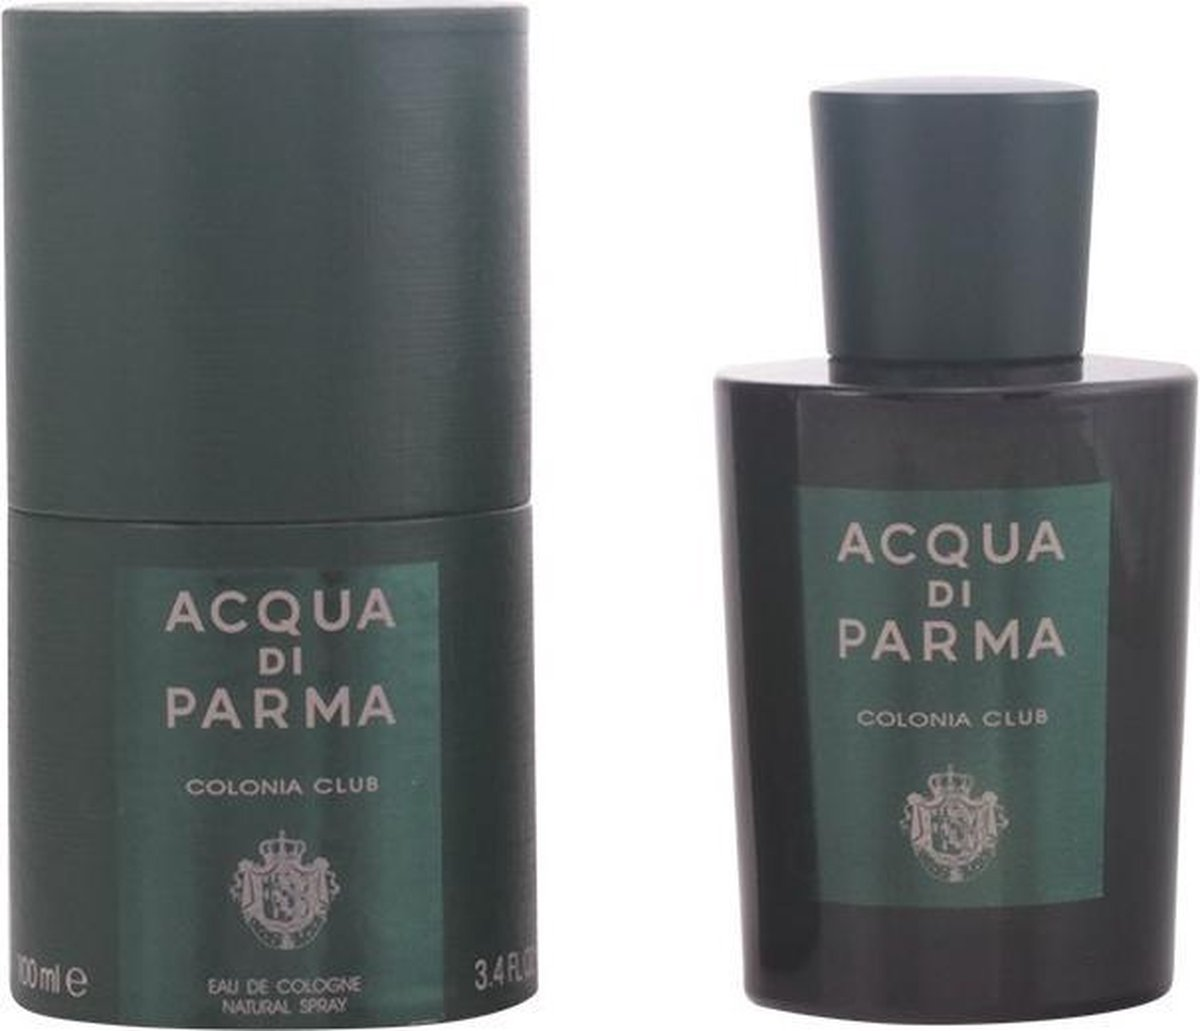 MULTI BUNDEL 2 stuks - Acqua Di Parma - COLONIA CLUB - eau de cologne - spray 100 ml